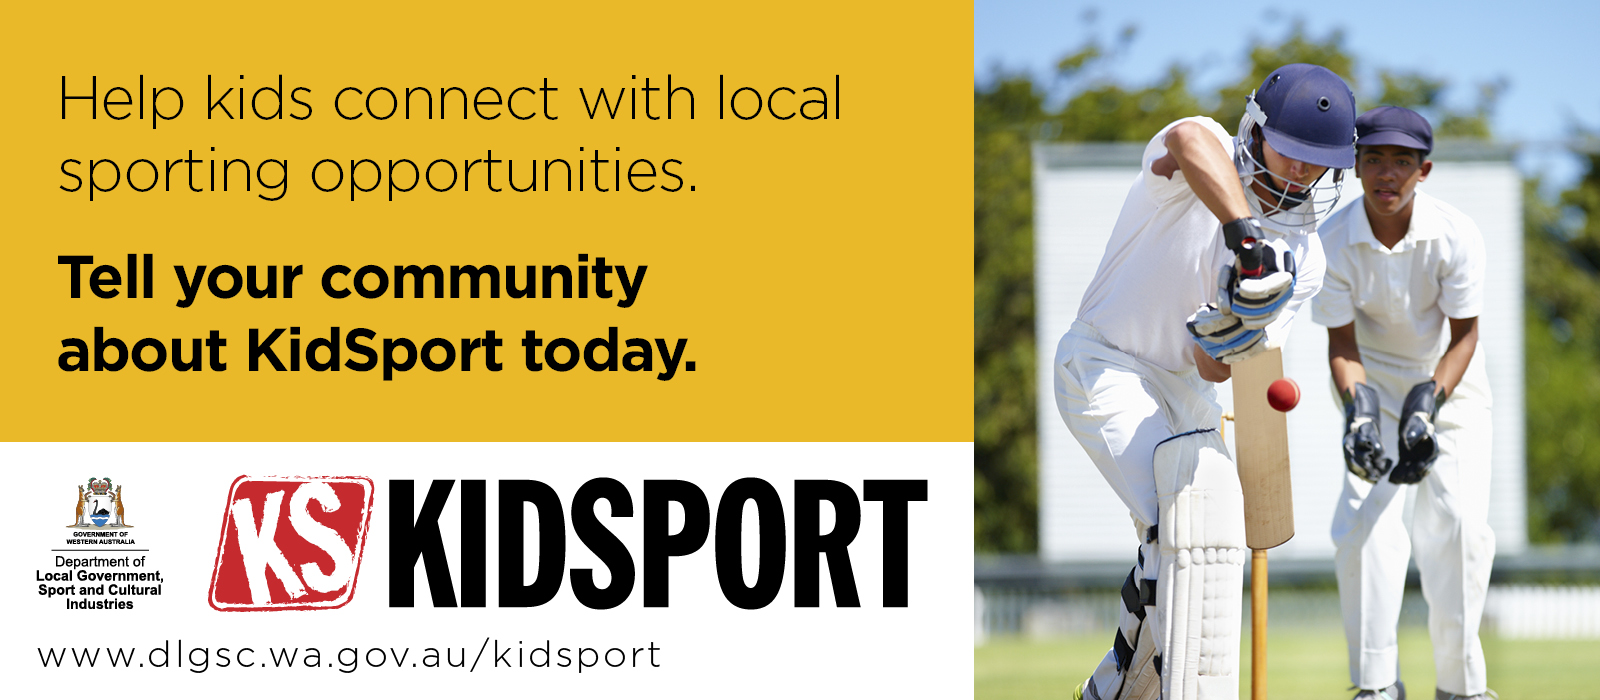 KidSport website image Help kids connect with local sporting opportunities